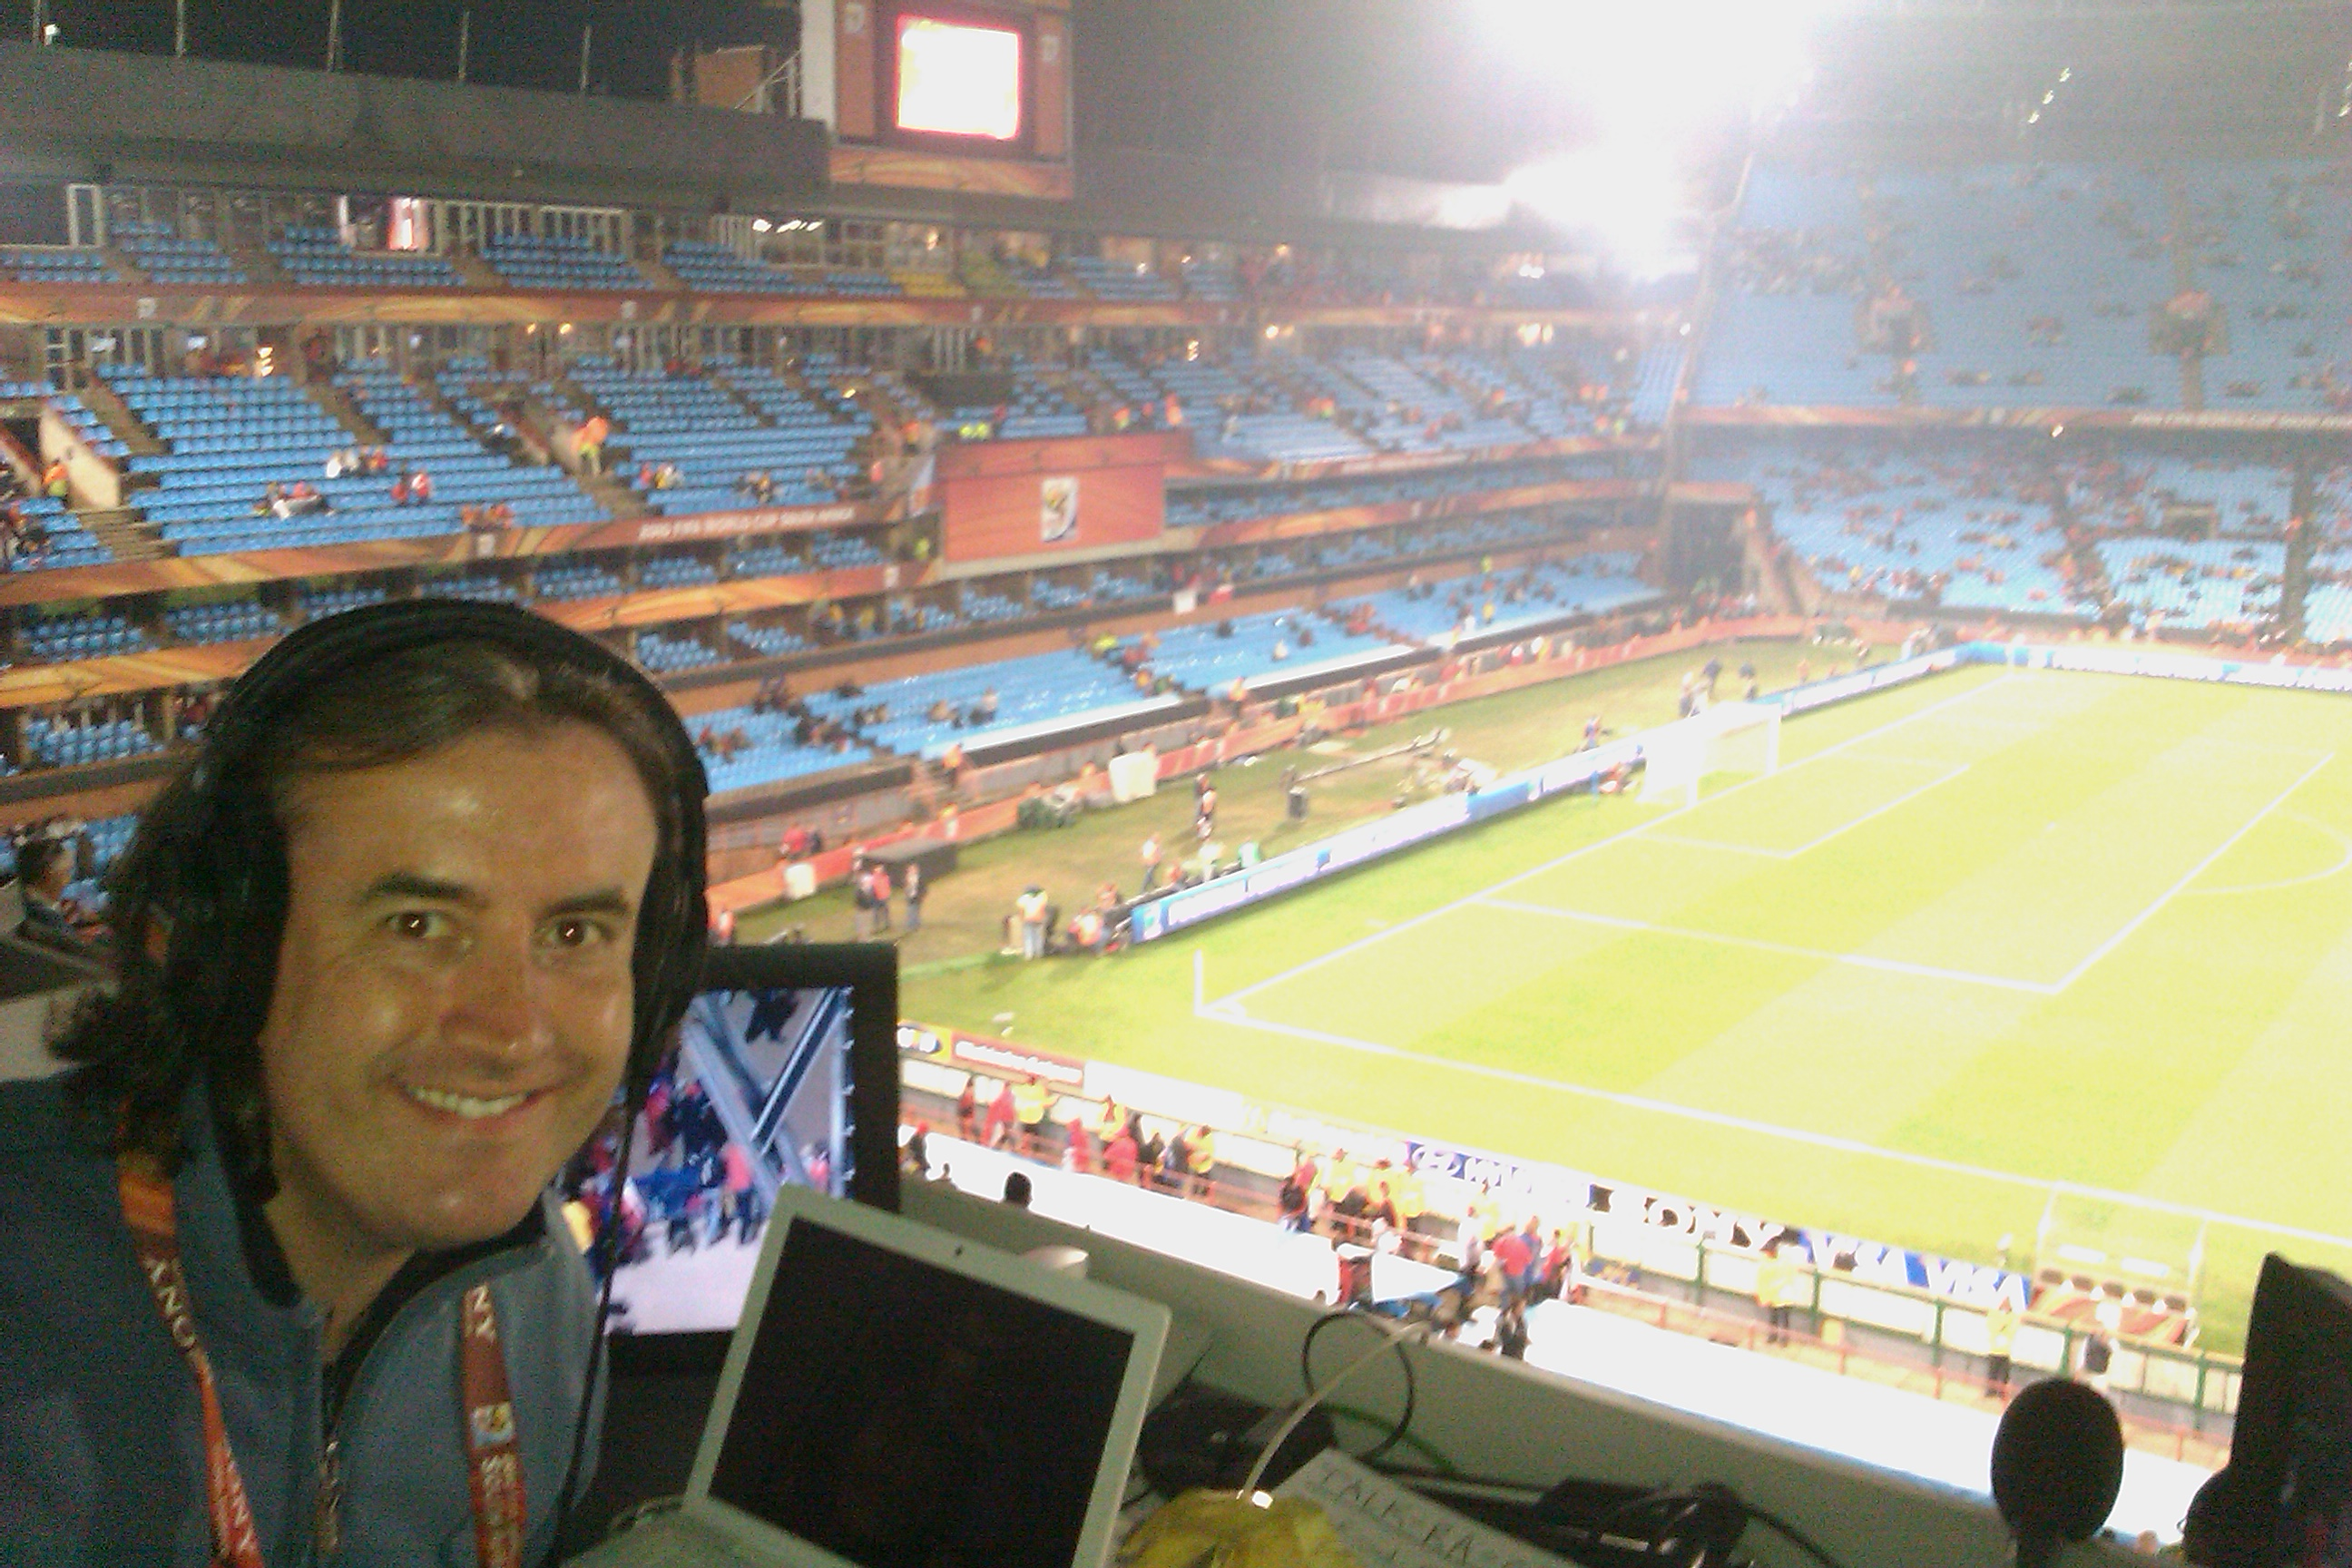 Setting up in Pretoria ahead of Chile v Spain - thermals in full effect!